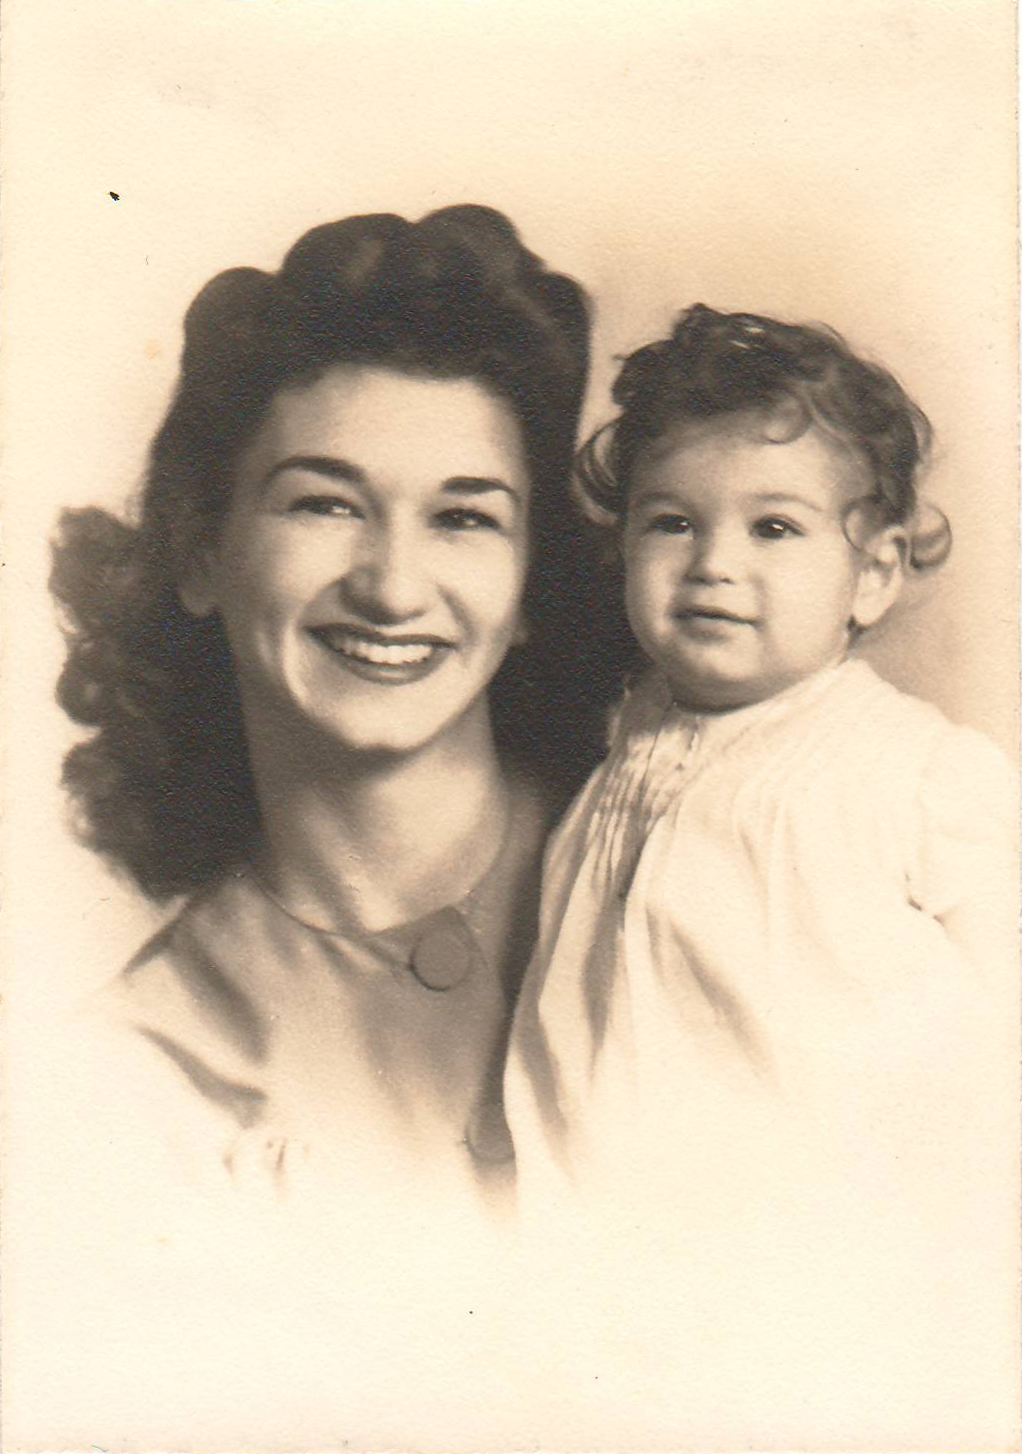 Becky and her daughter Donna, 1943.